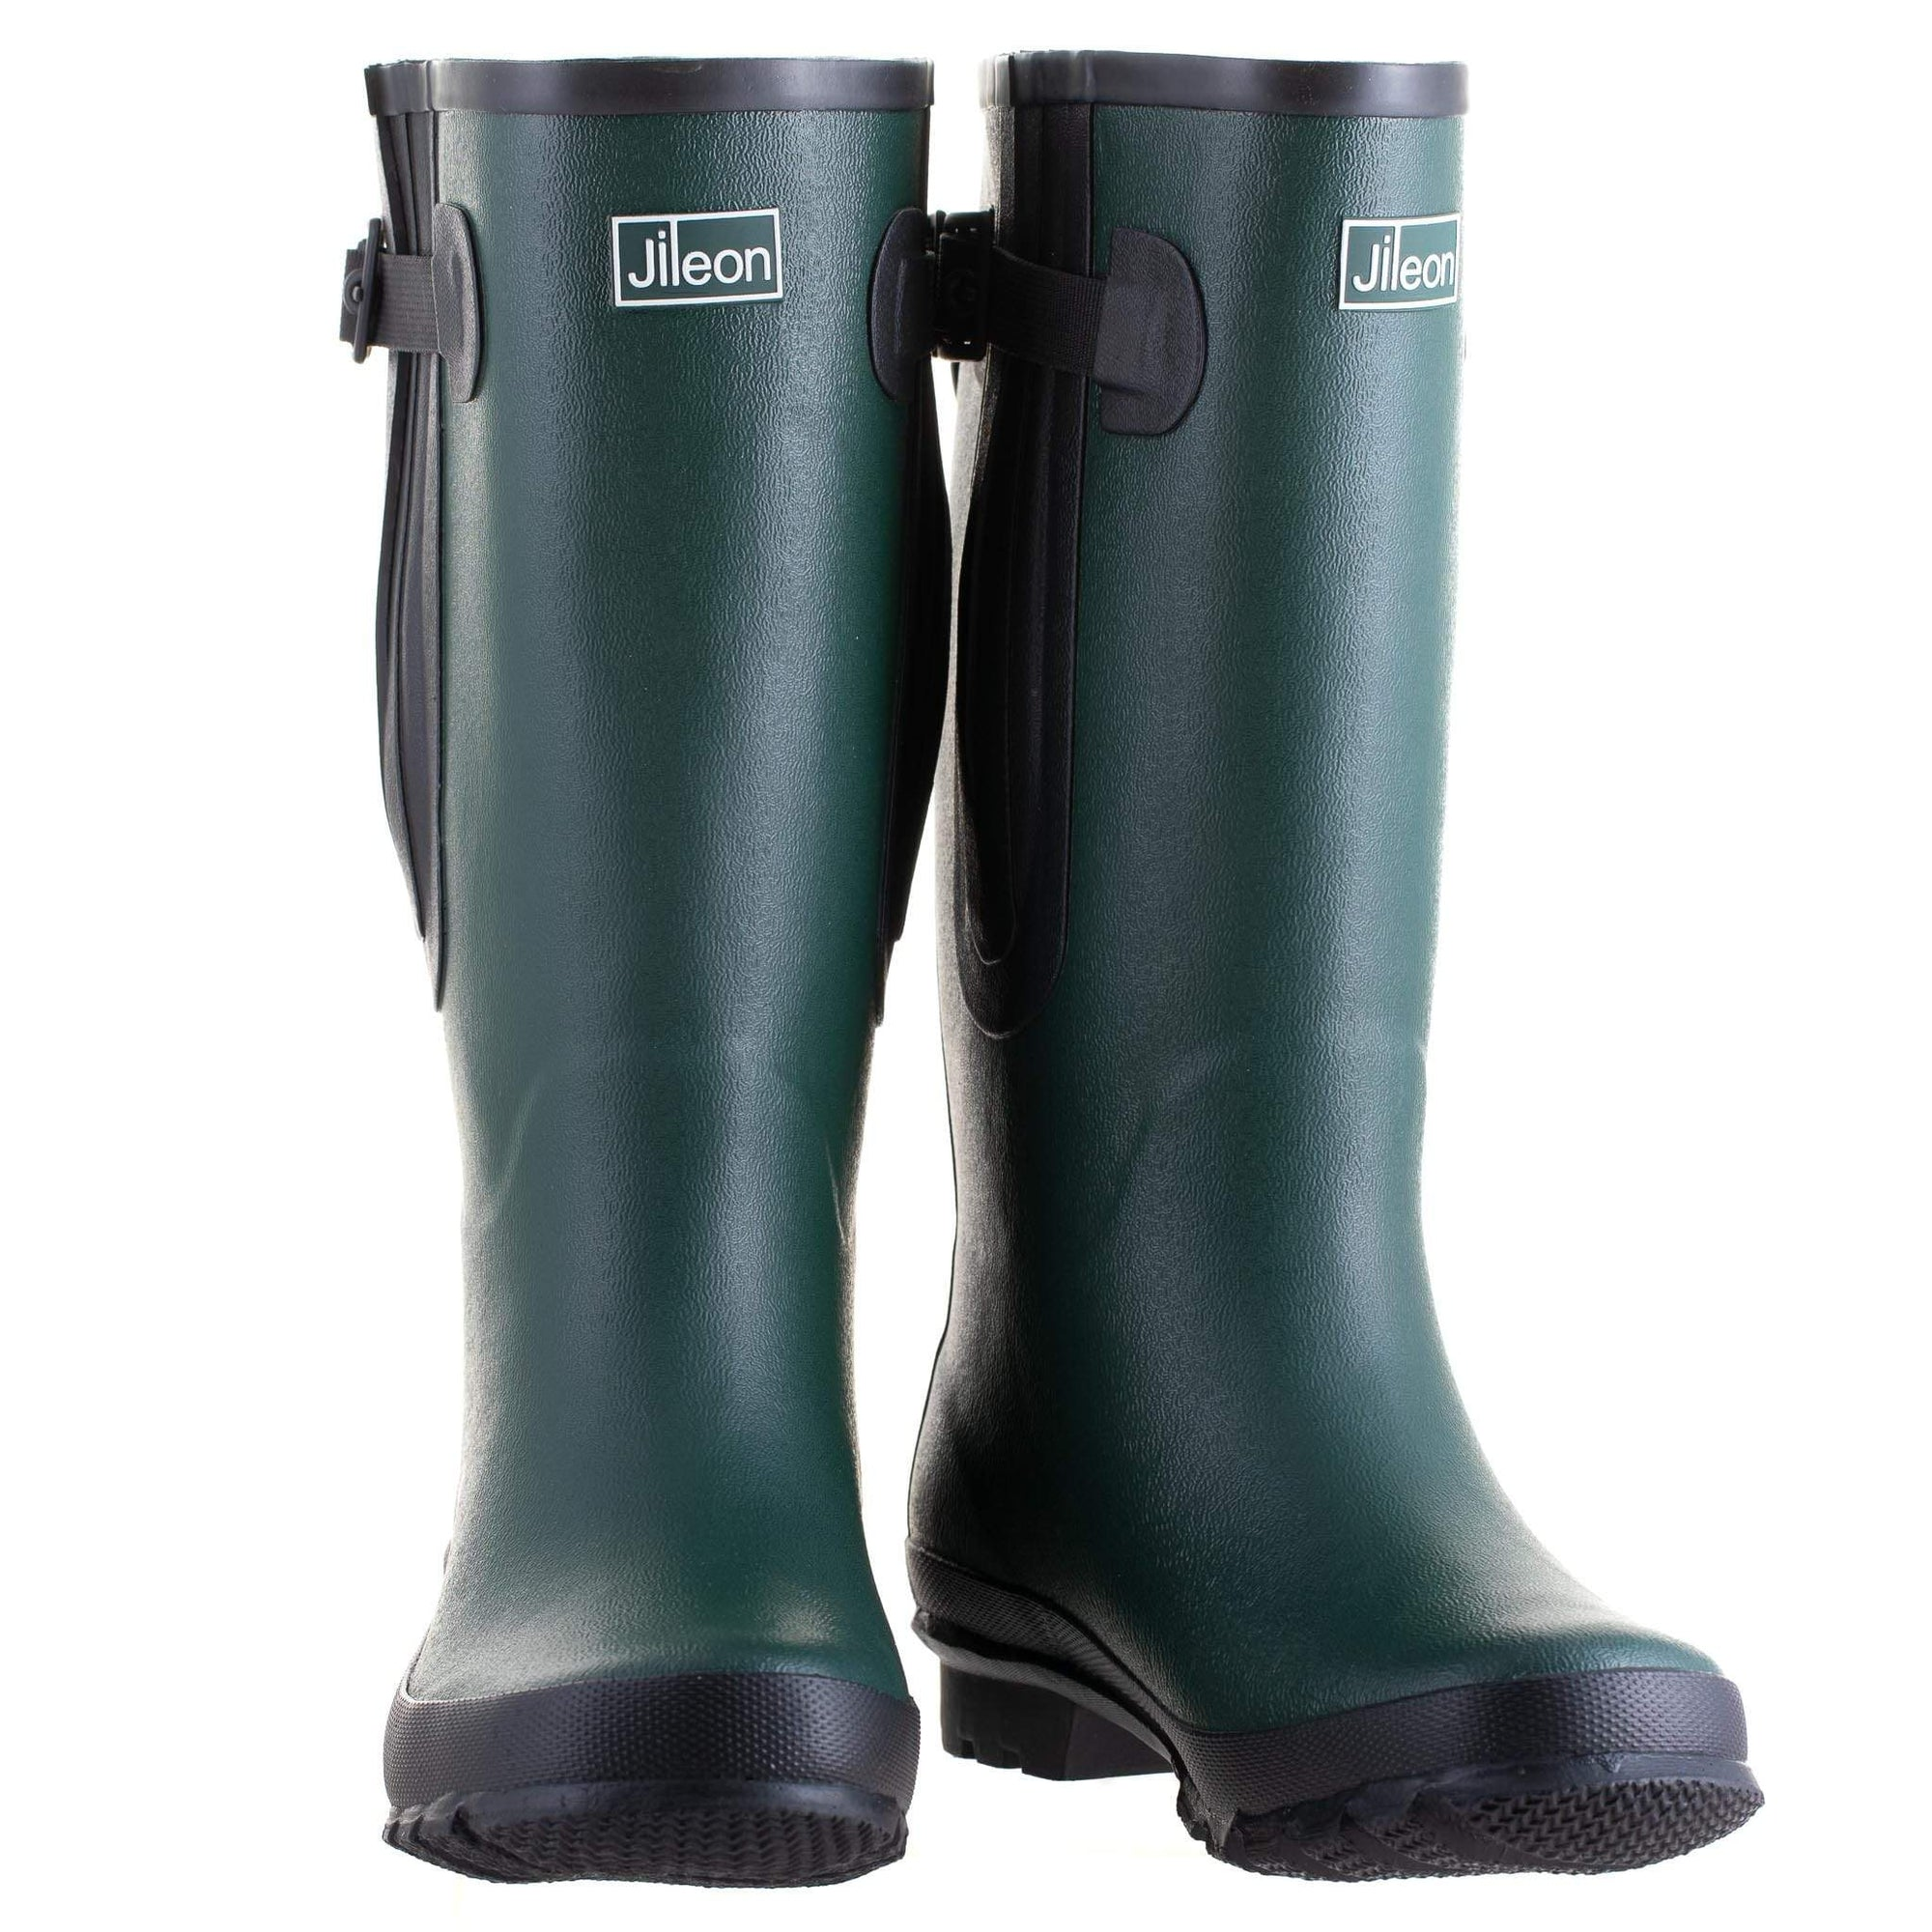 Extra Wide Calf Womens' Rain Boots - Green - Up to 23 Inch Calf Widest Calf Rain Boots in US